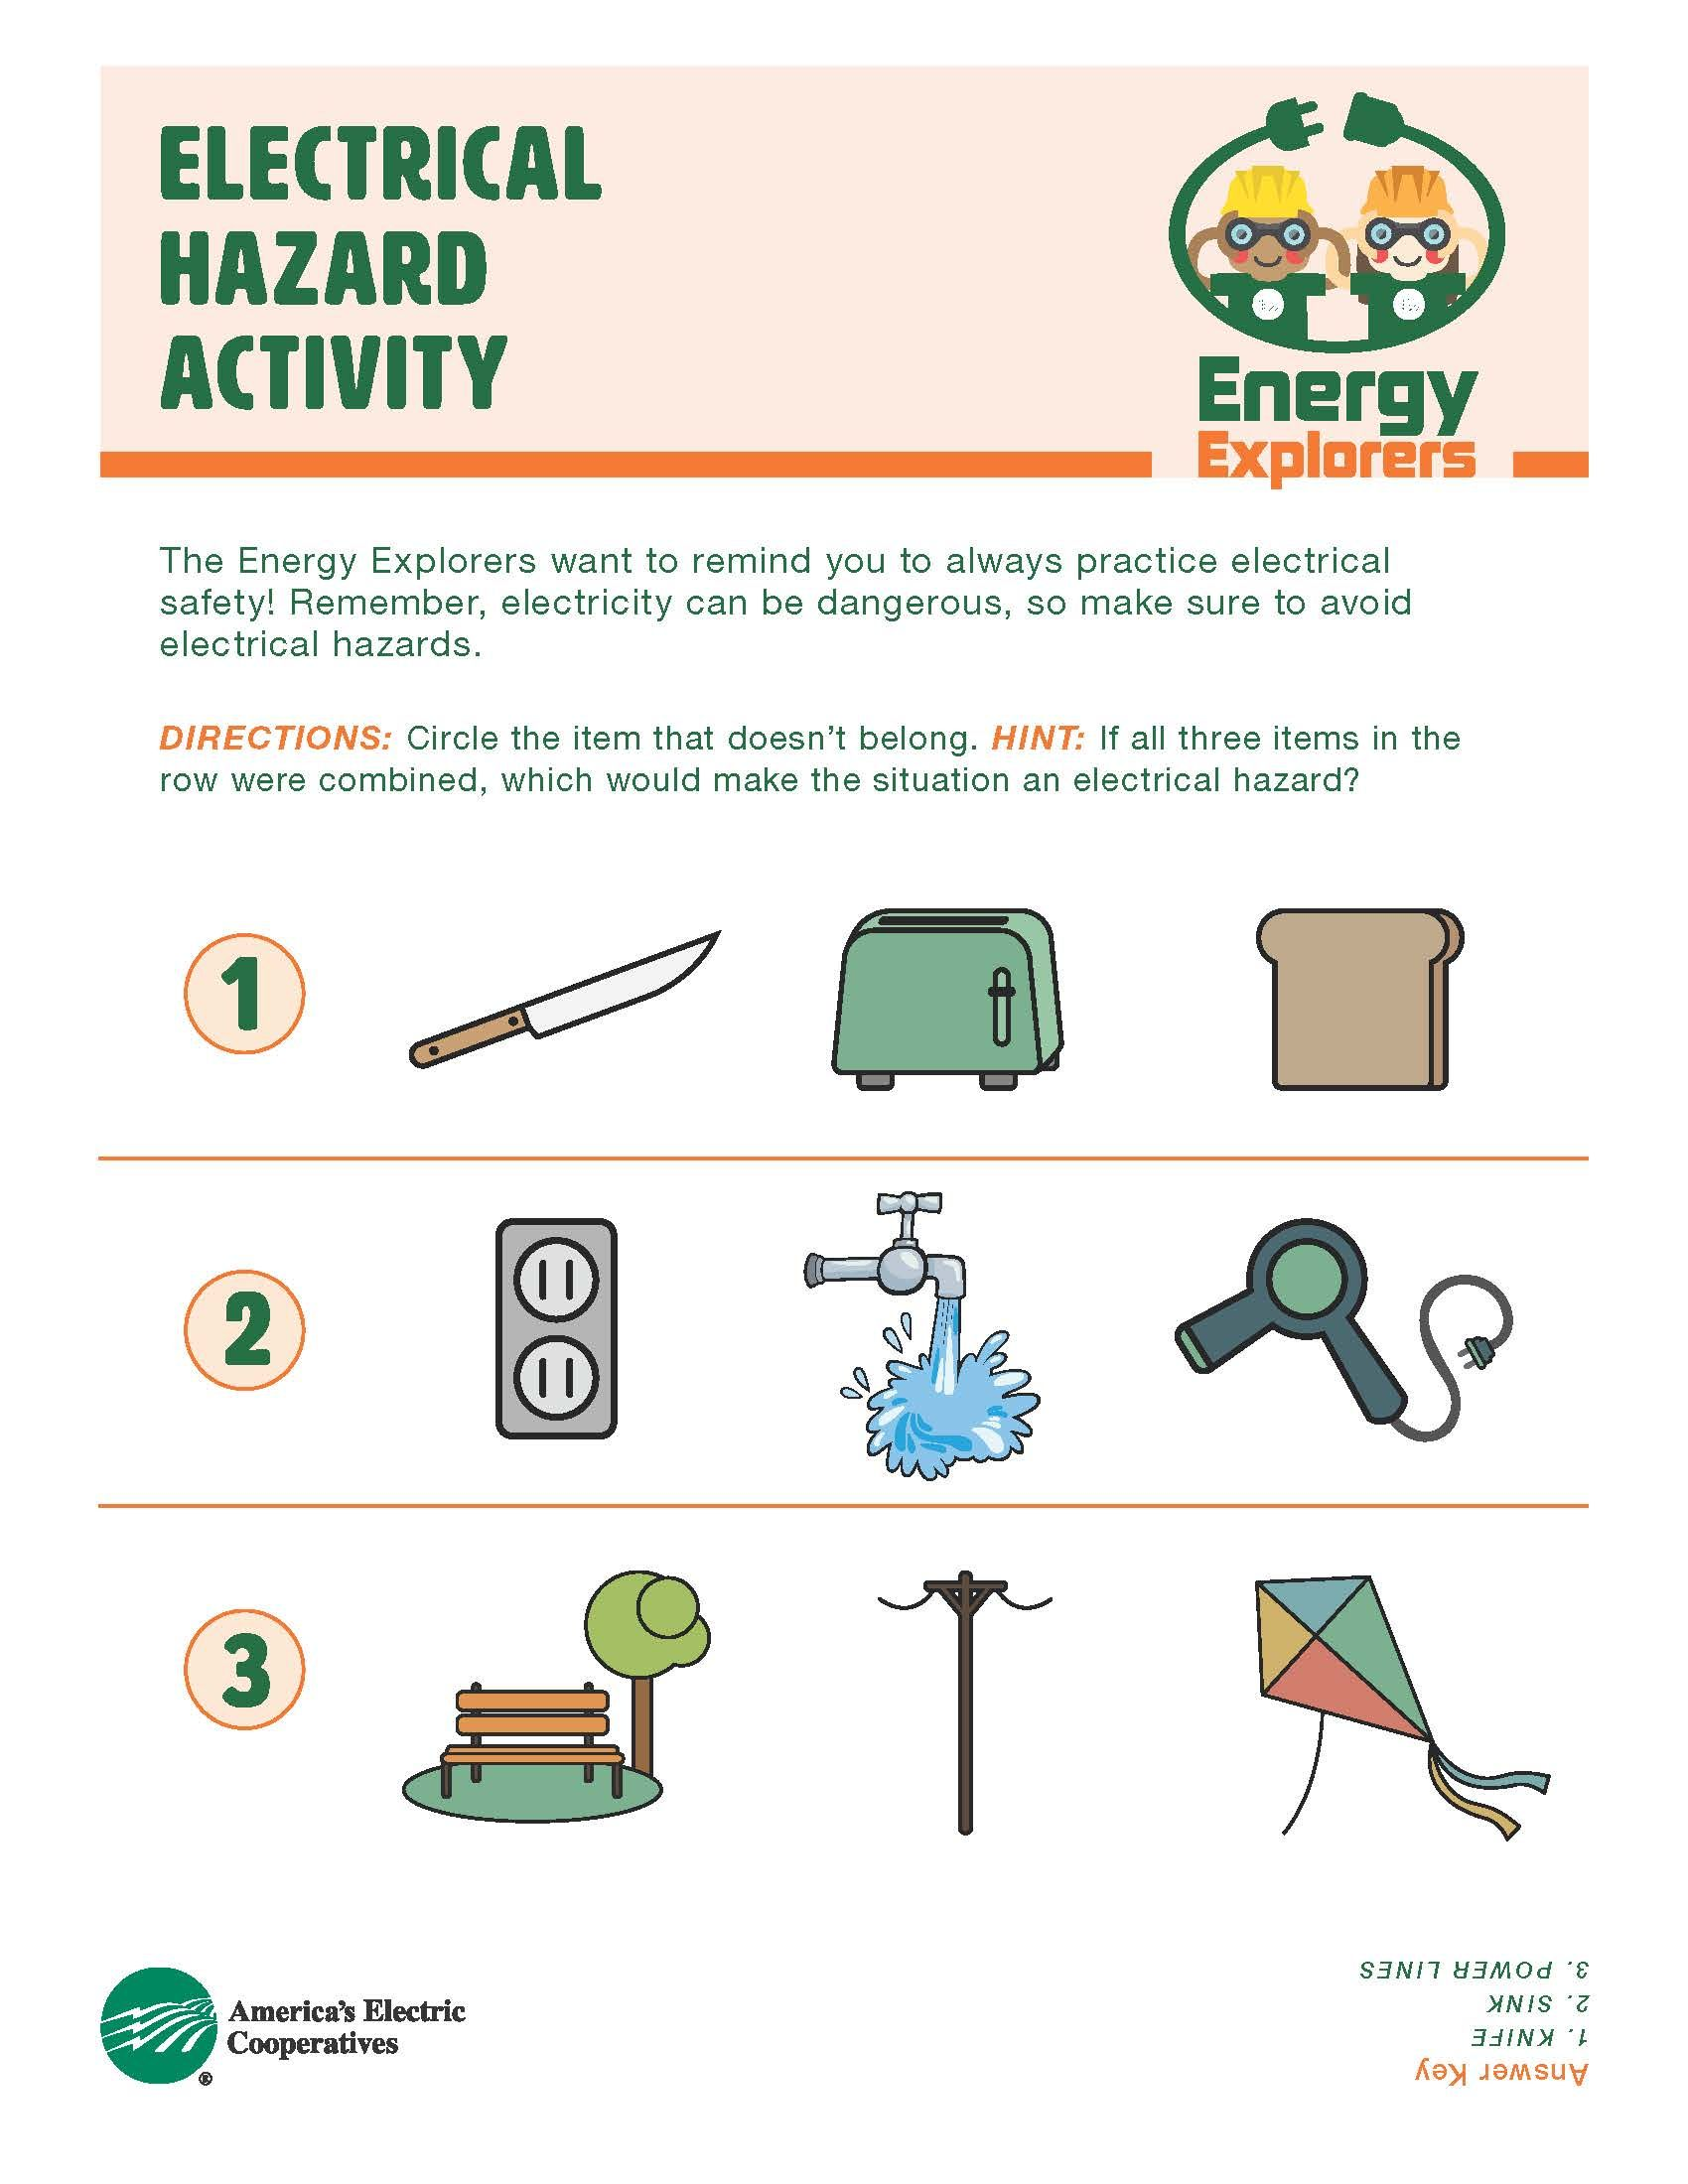 Spot Electrical Hazards In And Around Your Home With This Fun Electrical Power Worksheets Spot Electrical Hazards In And Around Your Home With This Fun Activity Sheet